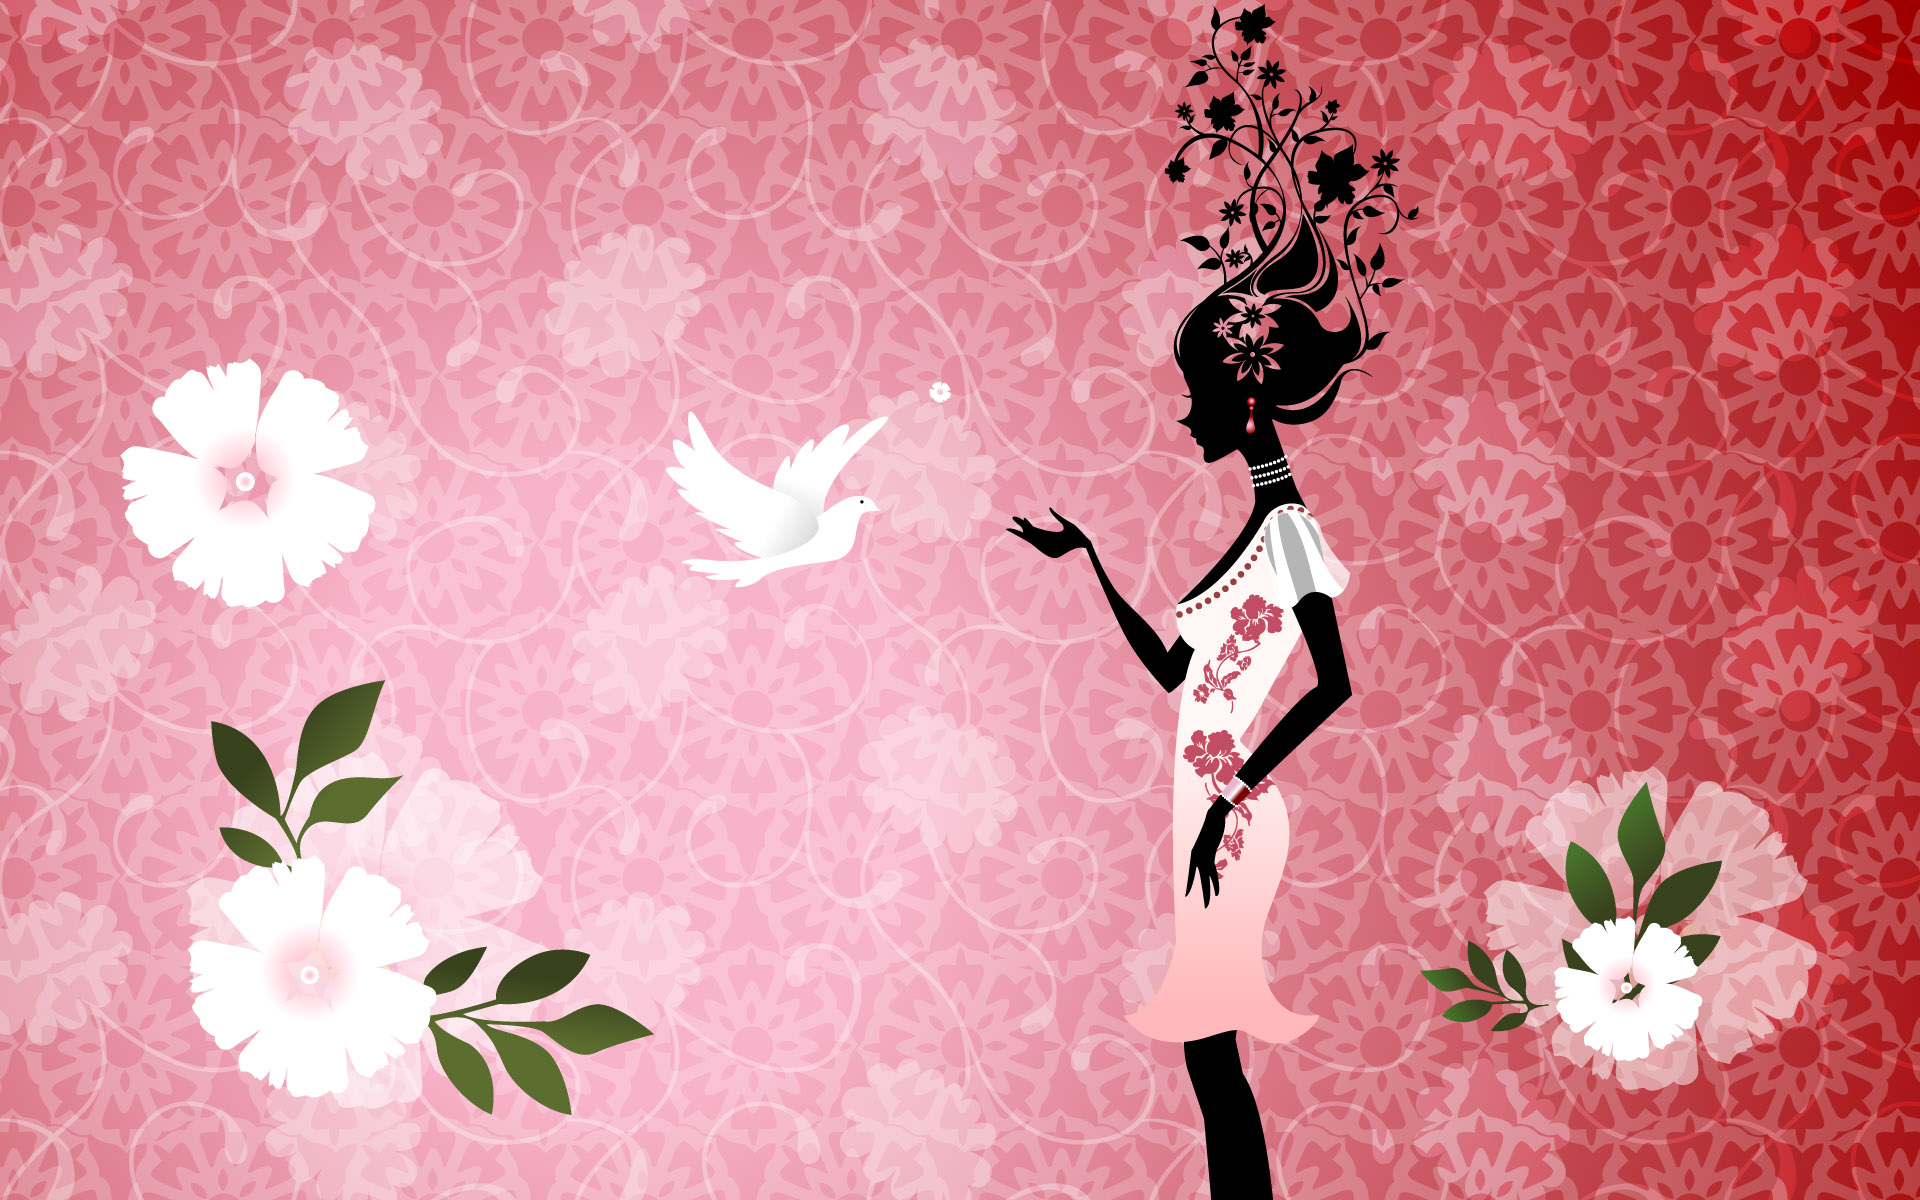 HD Wallpapers Girl with Dove